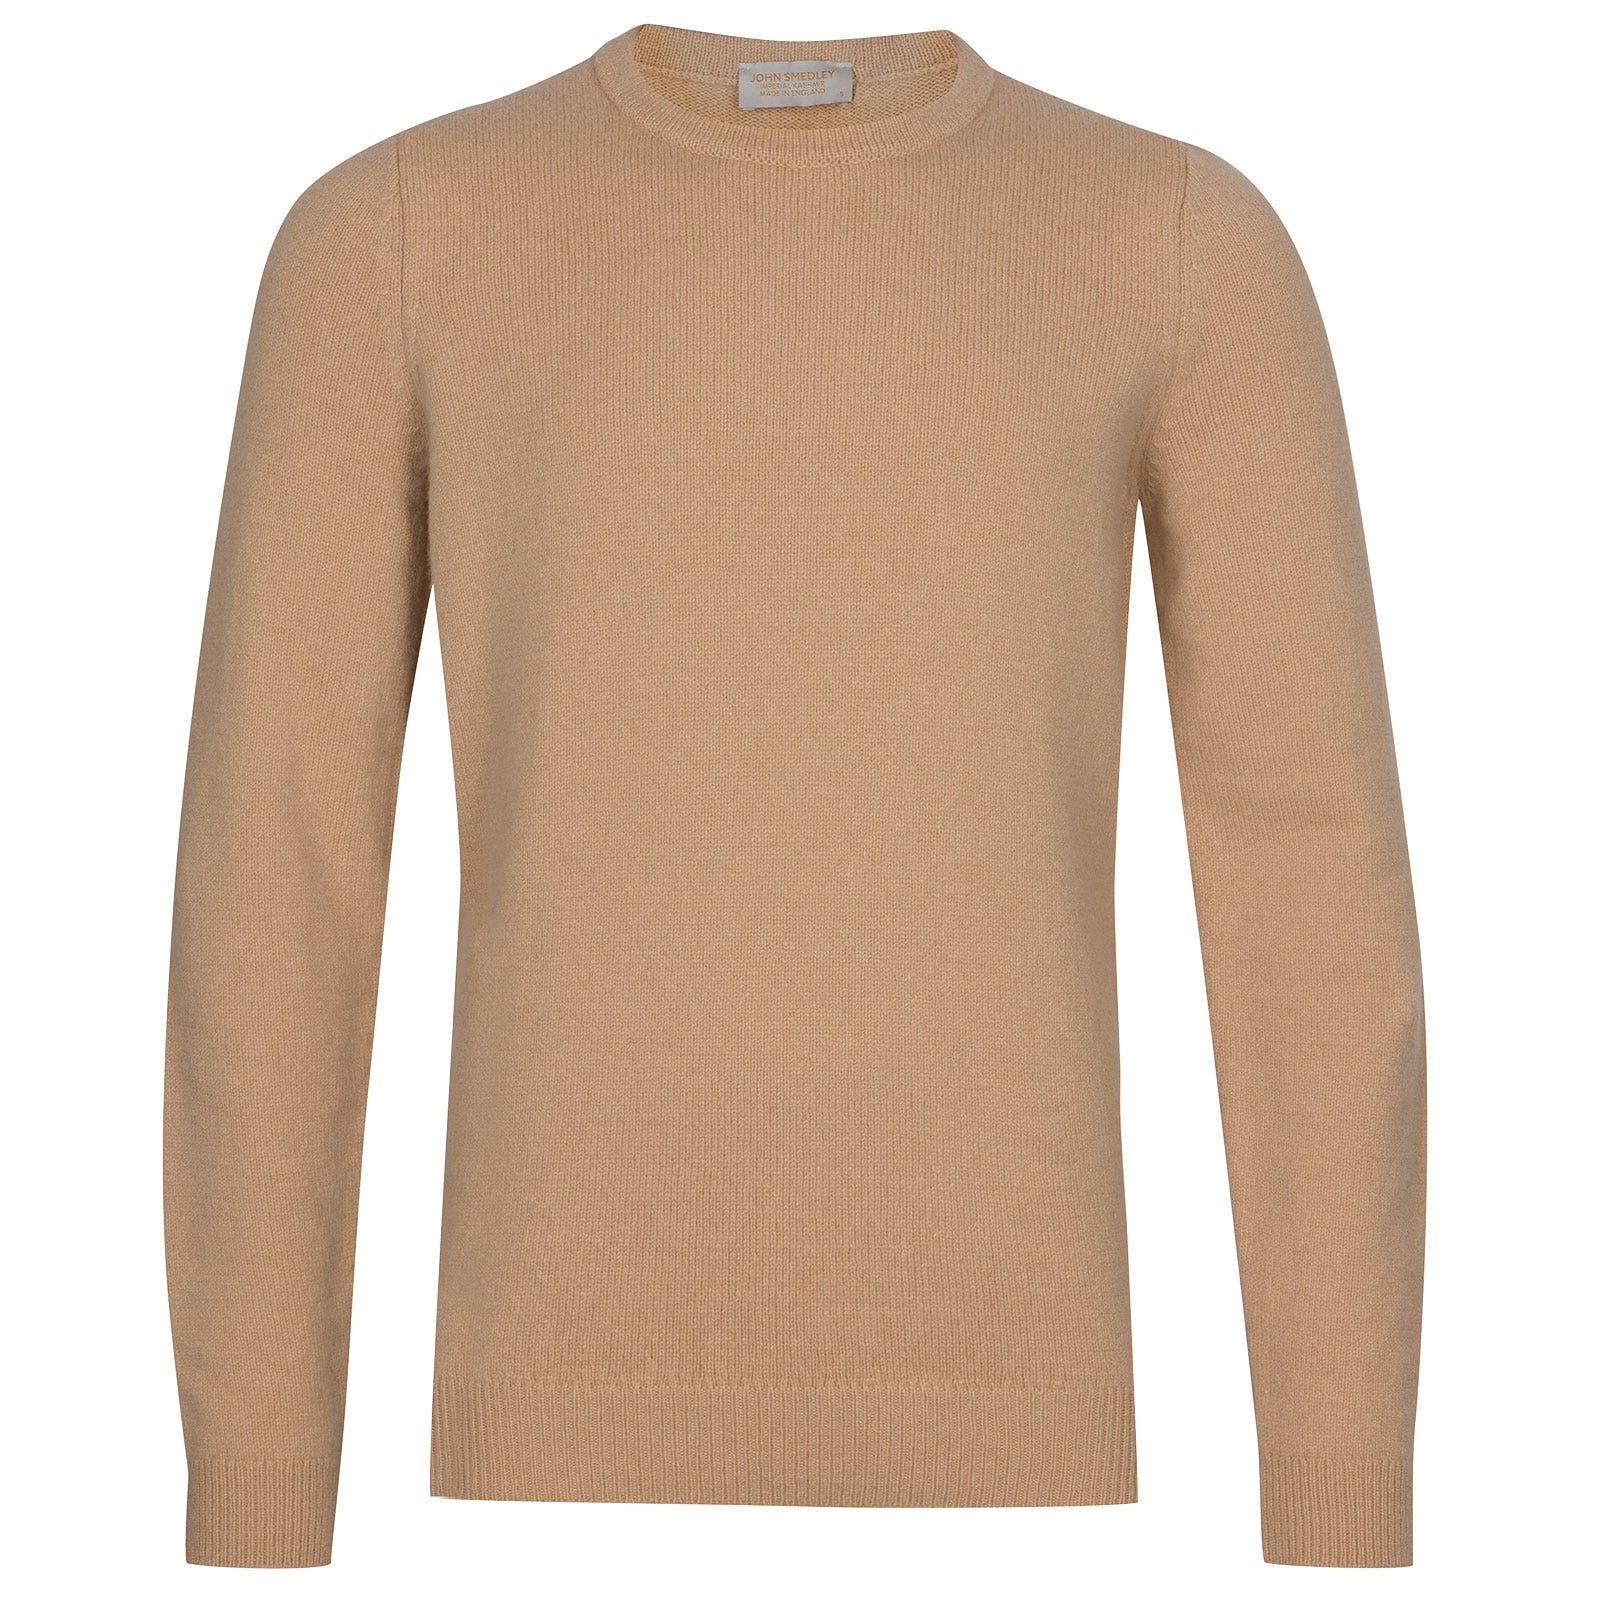 John Smedley Crowford Wool and Cashmere Pullover in Light Camel-XXL